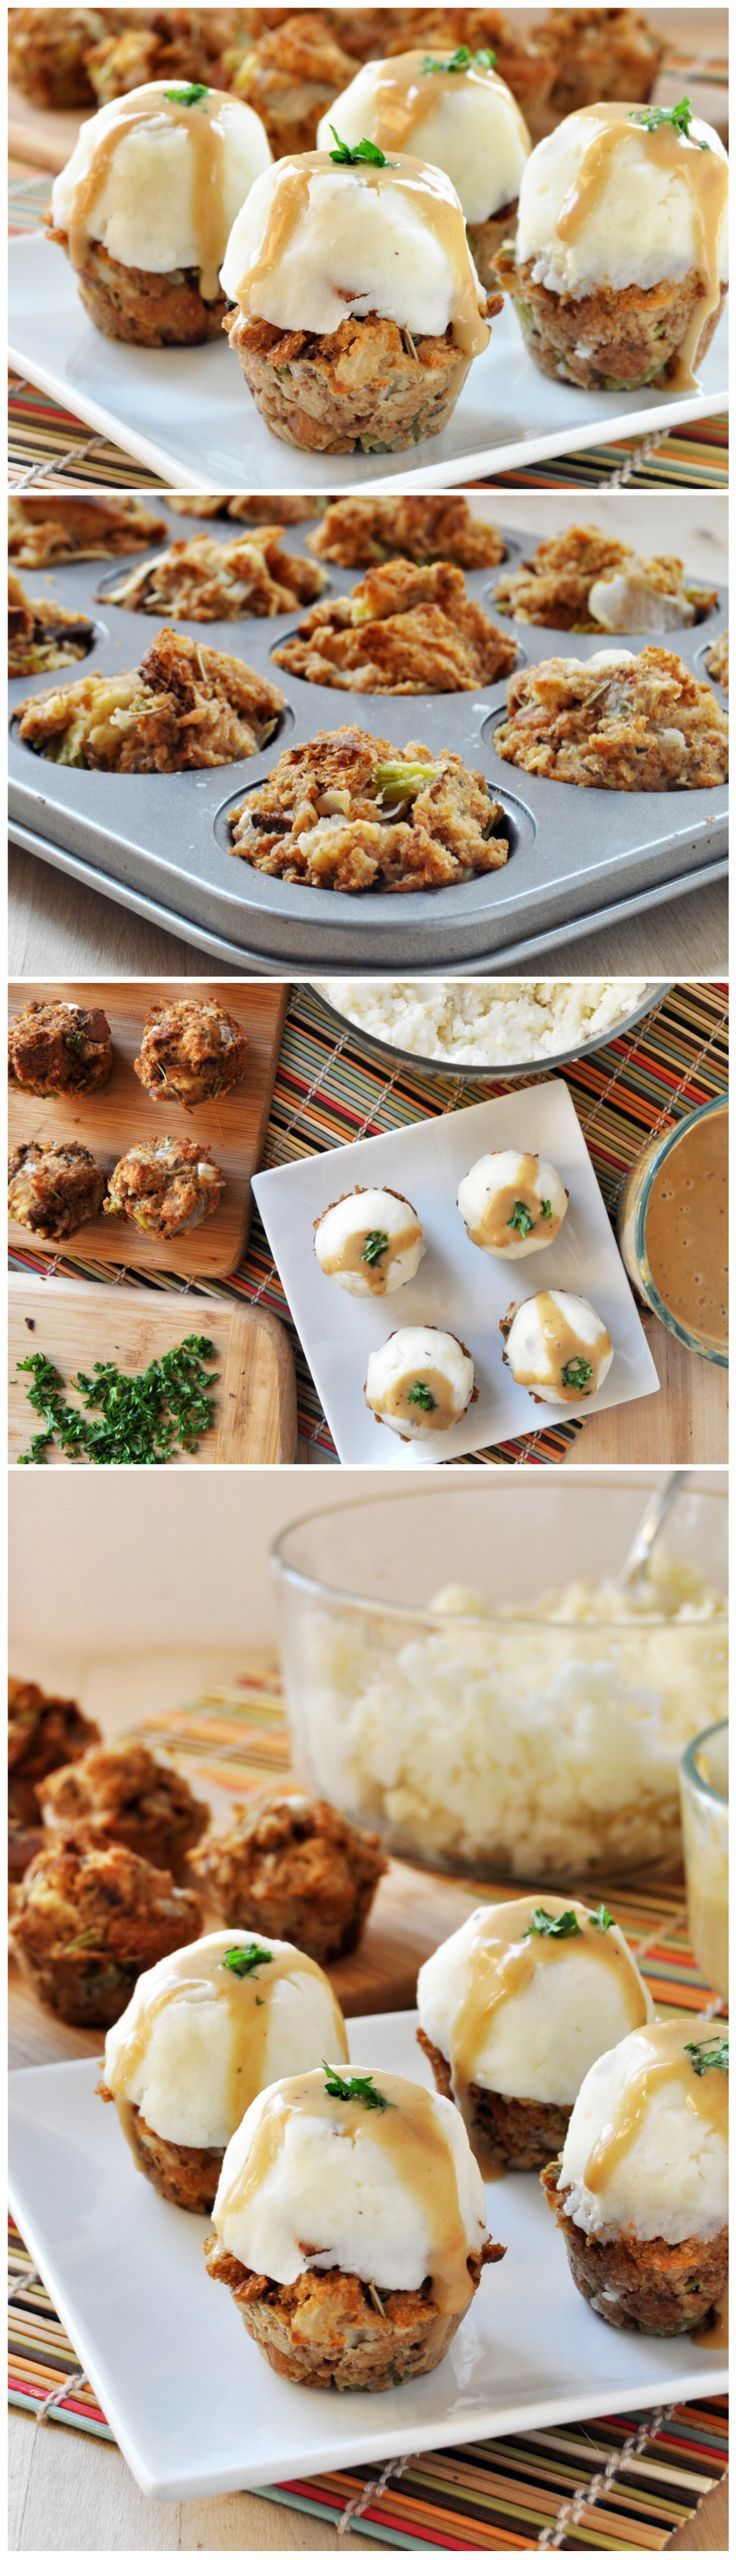 Thanksgiving Stuffing Muffins topped with mashed potatoes and gravy for a bite-sized sampling of everyone's favorites on Thanksgiving Day! Vegan, gluten free, and perfect for Fall.